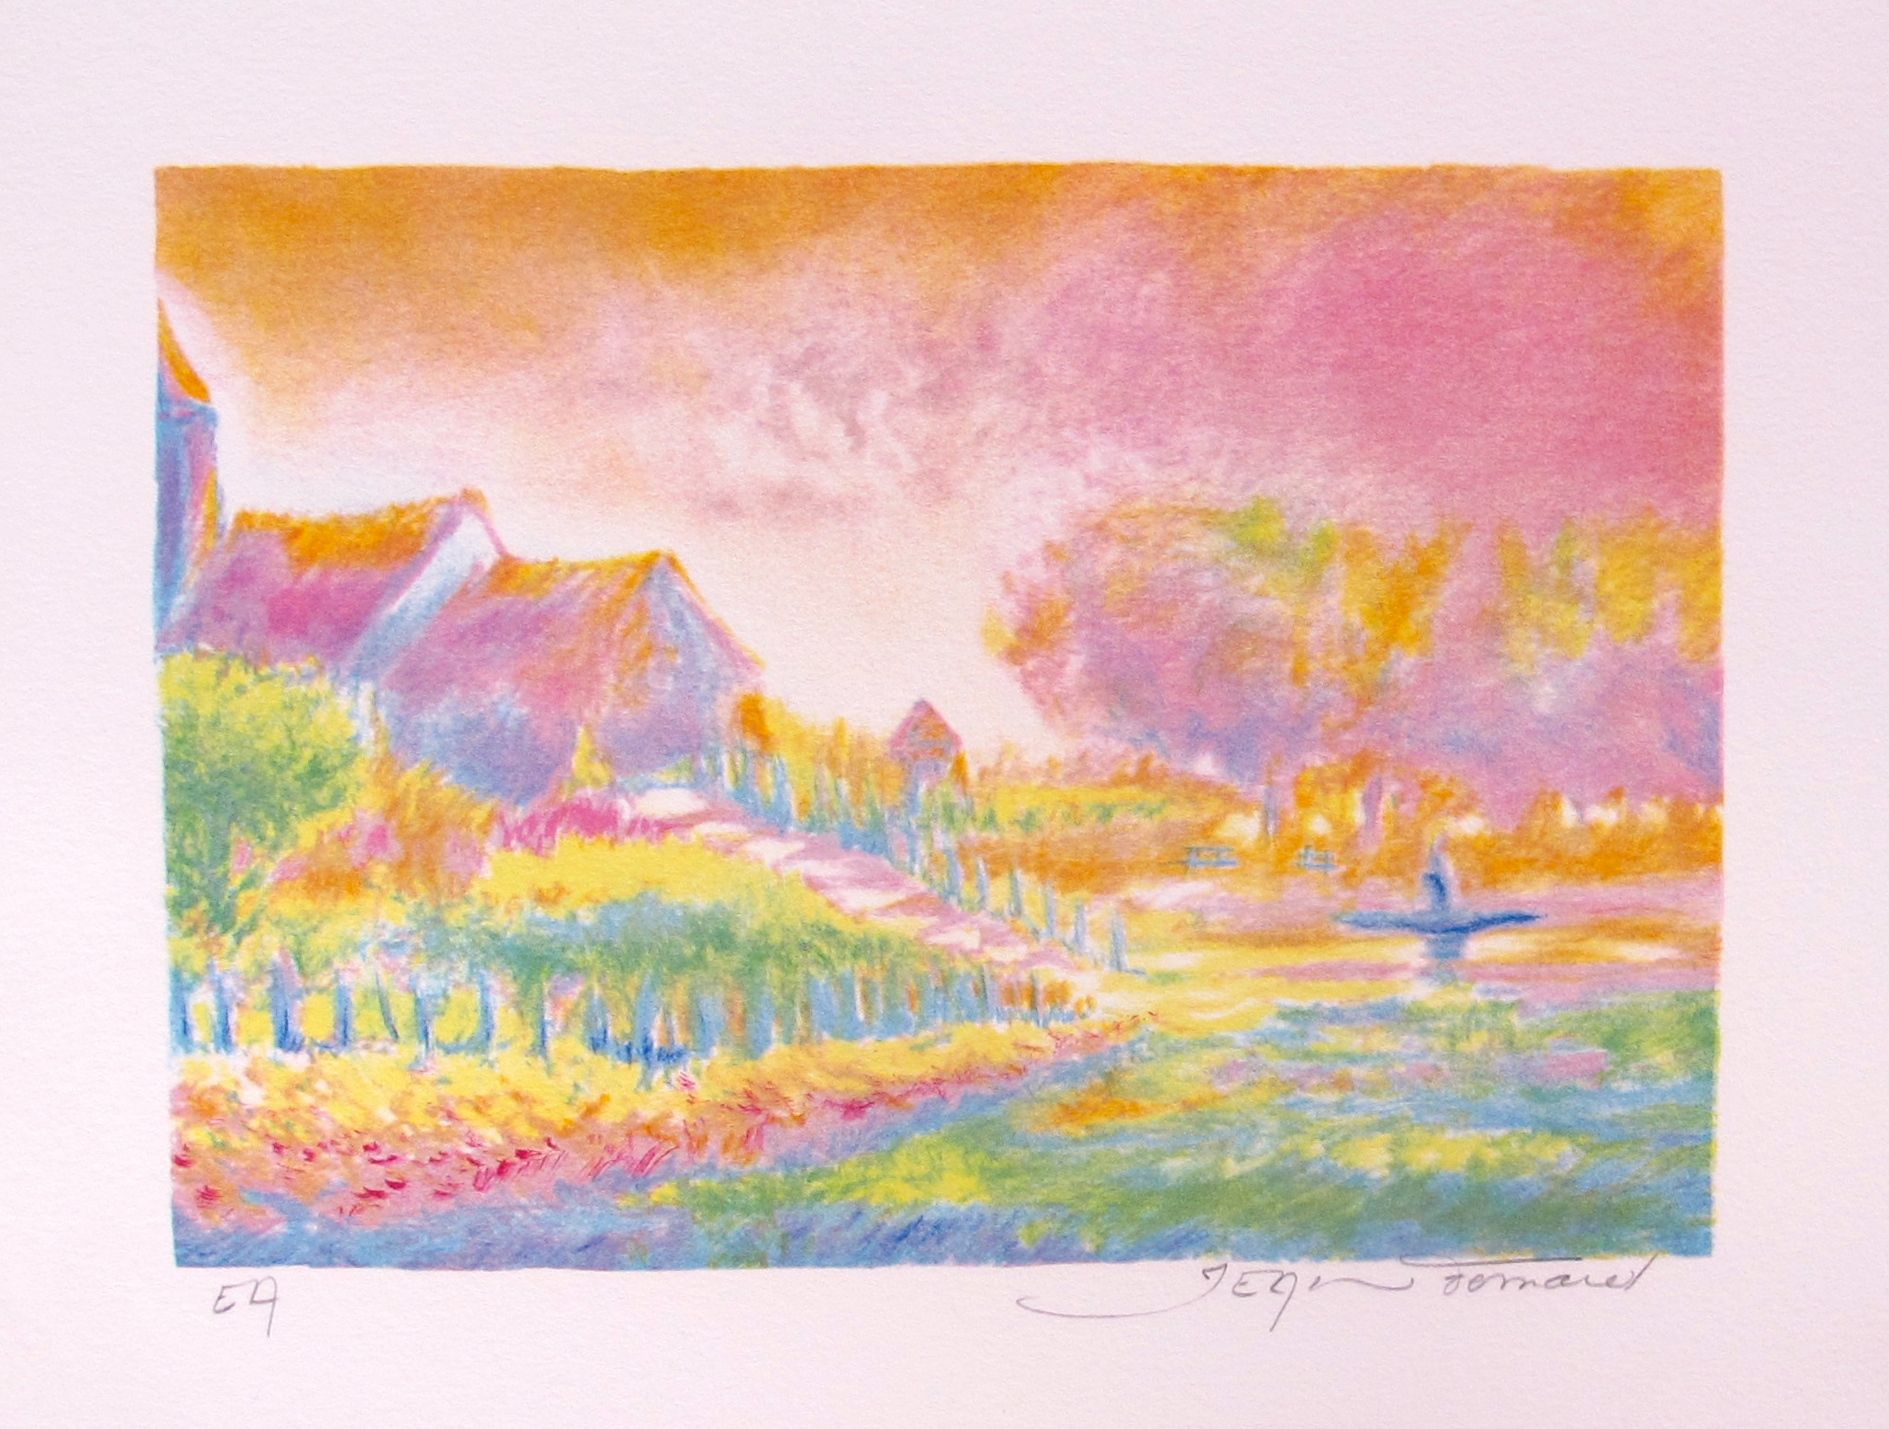 Jean Fernand SOLEIL LEVANT VI Hand Signed Limited Edition Lithograph